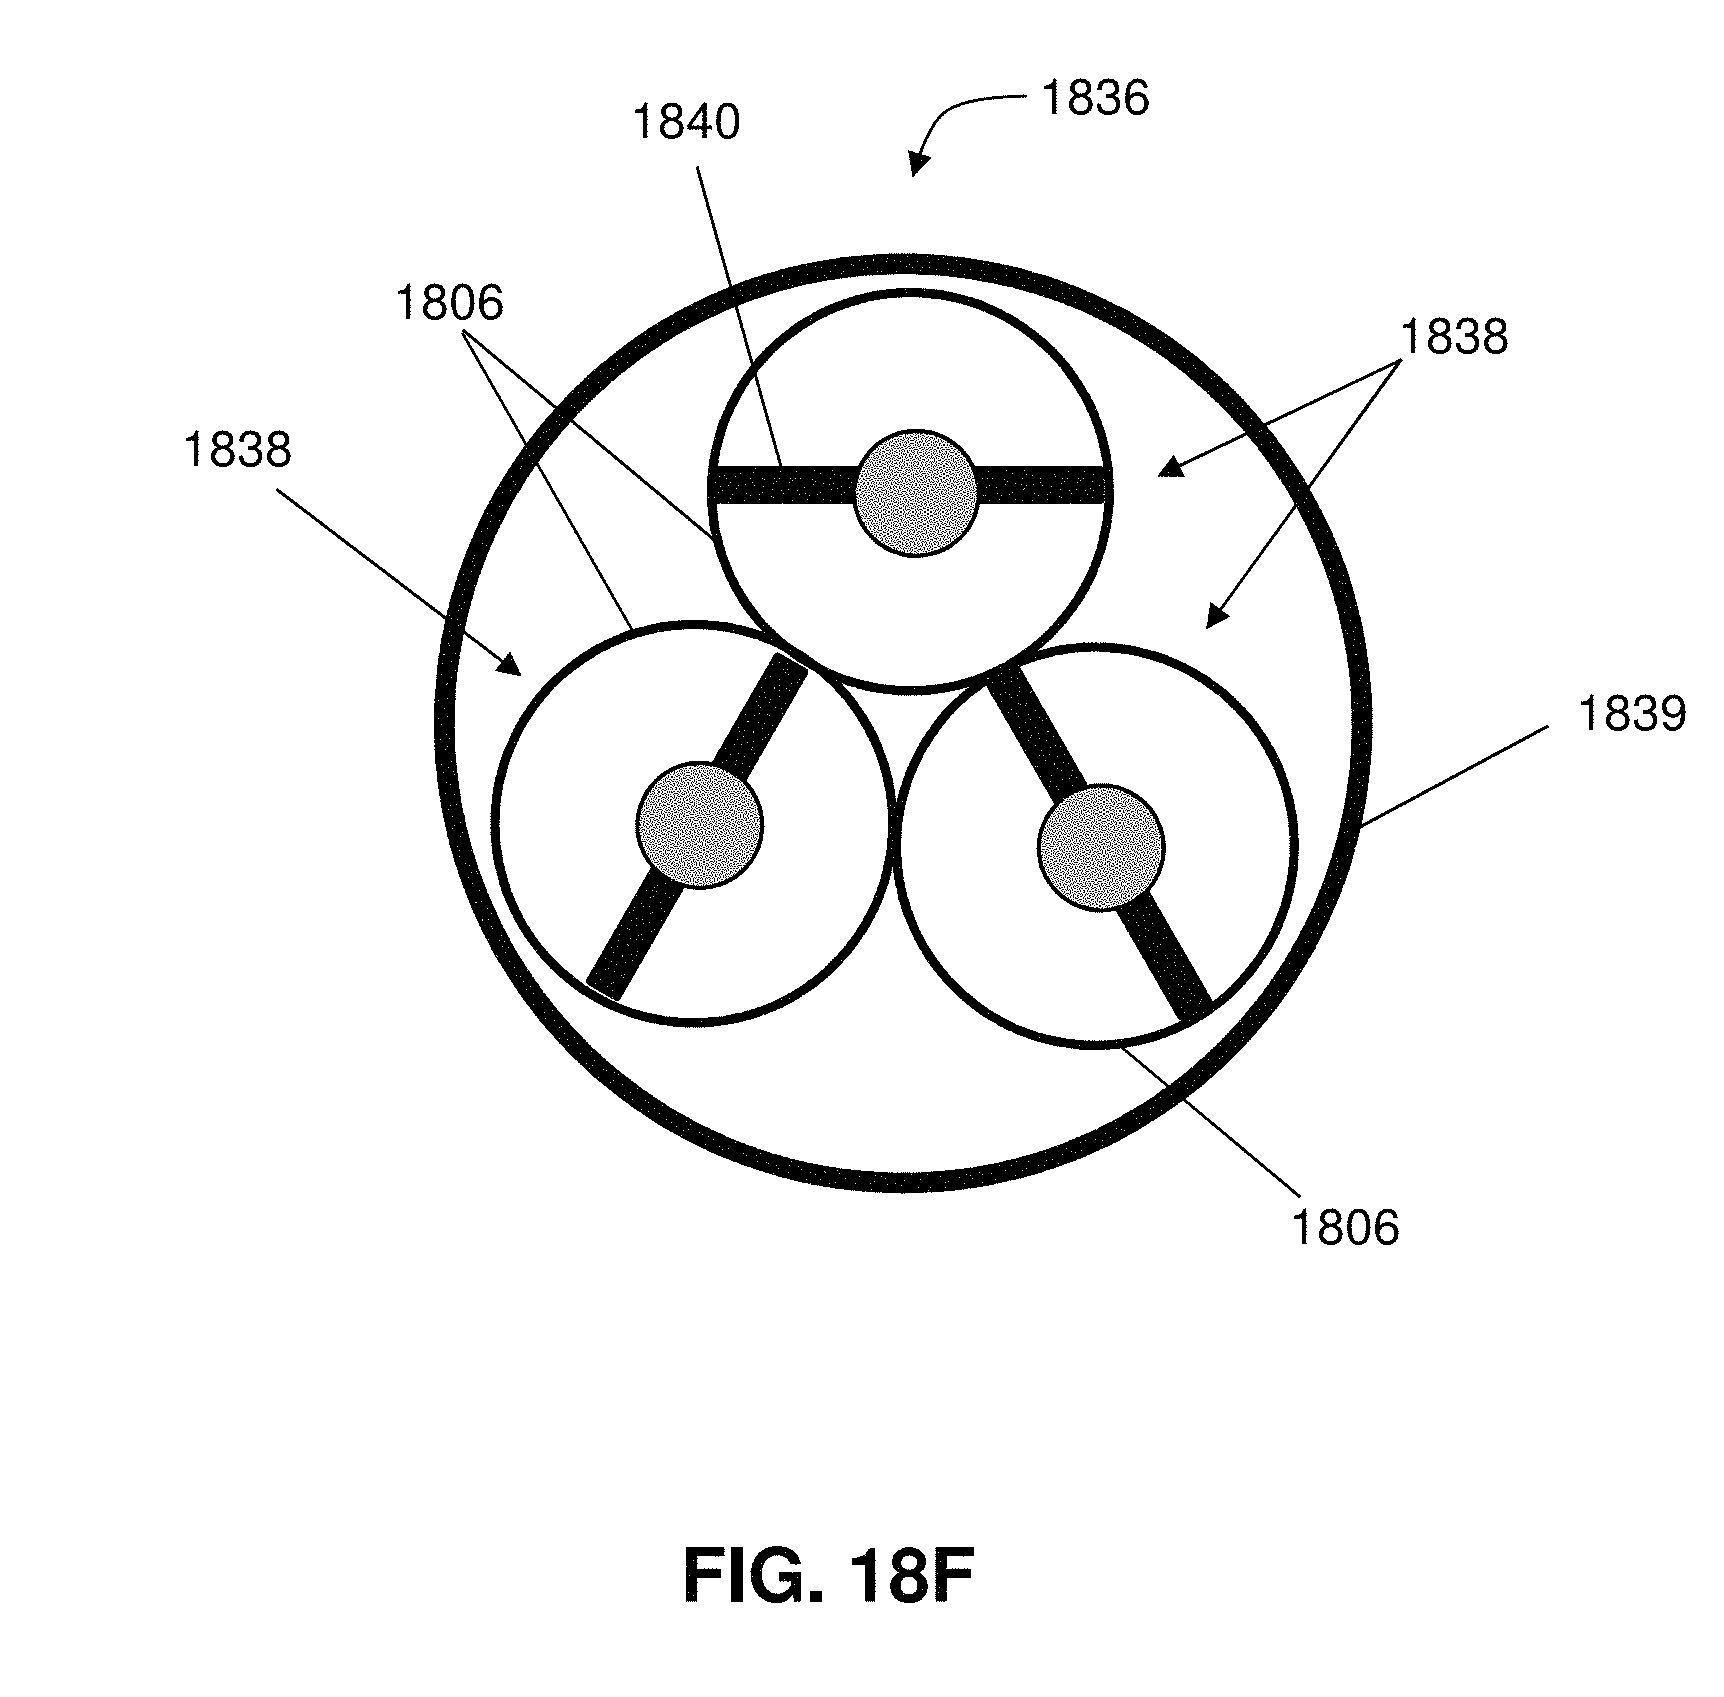 Us9742462b2 transmission medium and munication interfaces and methods for use therewith patents